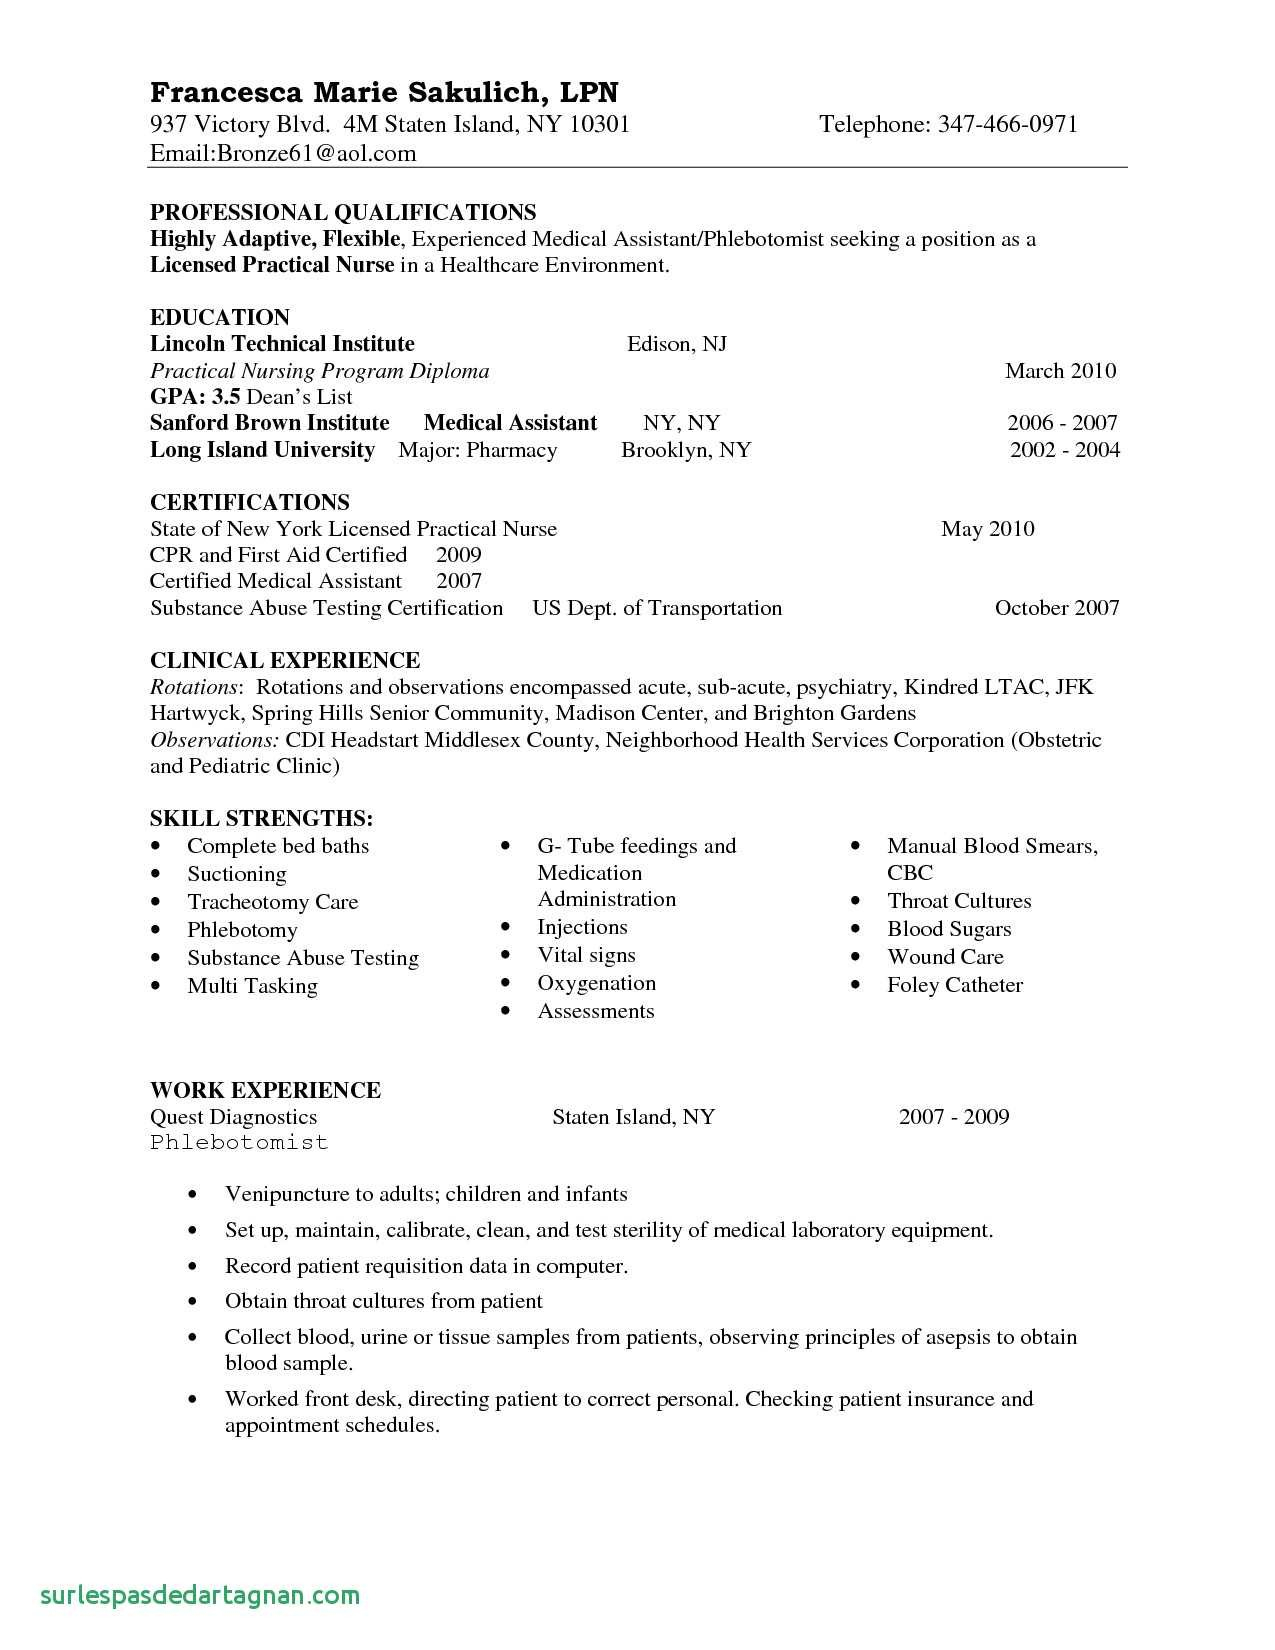 Student Nurse Resume Template Free - Medical Resume Template Free Elegant New Graduate Nurse Resume